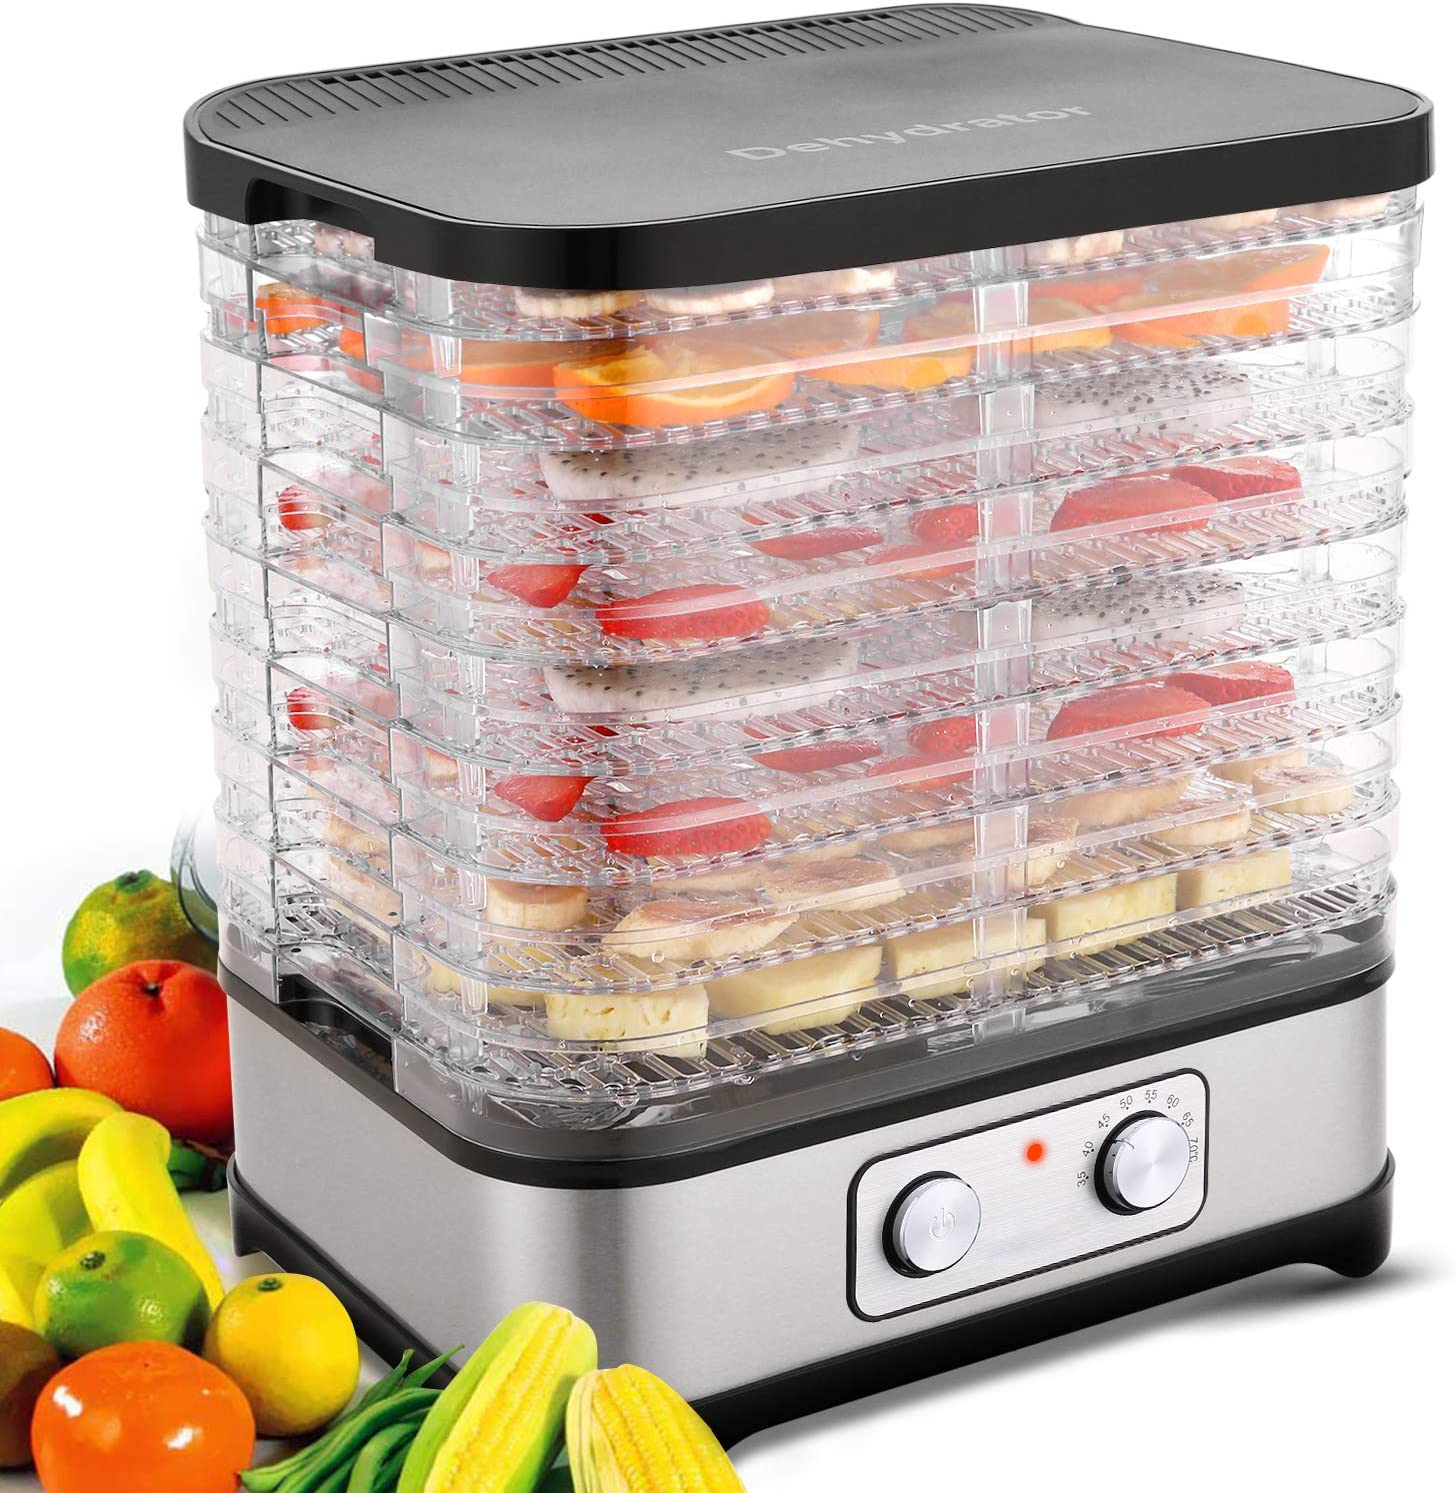 Food Dehydrator Machine, 8-Tray Fruit Dehydrators with Temperature Control(95ºF-158ºF) Knob Button for Jerky/Meat/Beef/Fruit/Vegetable, 400 Watt, BPA Free